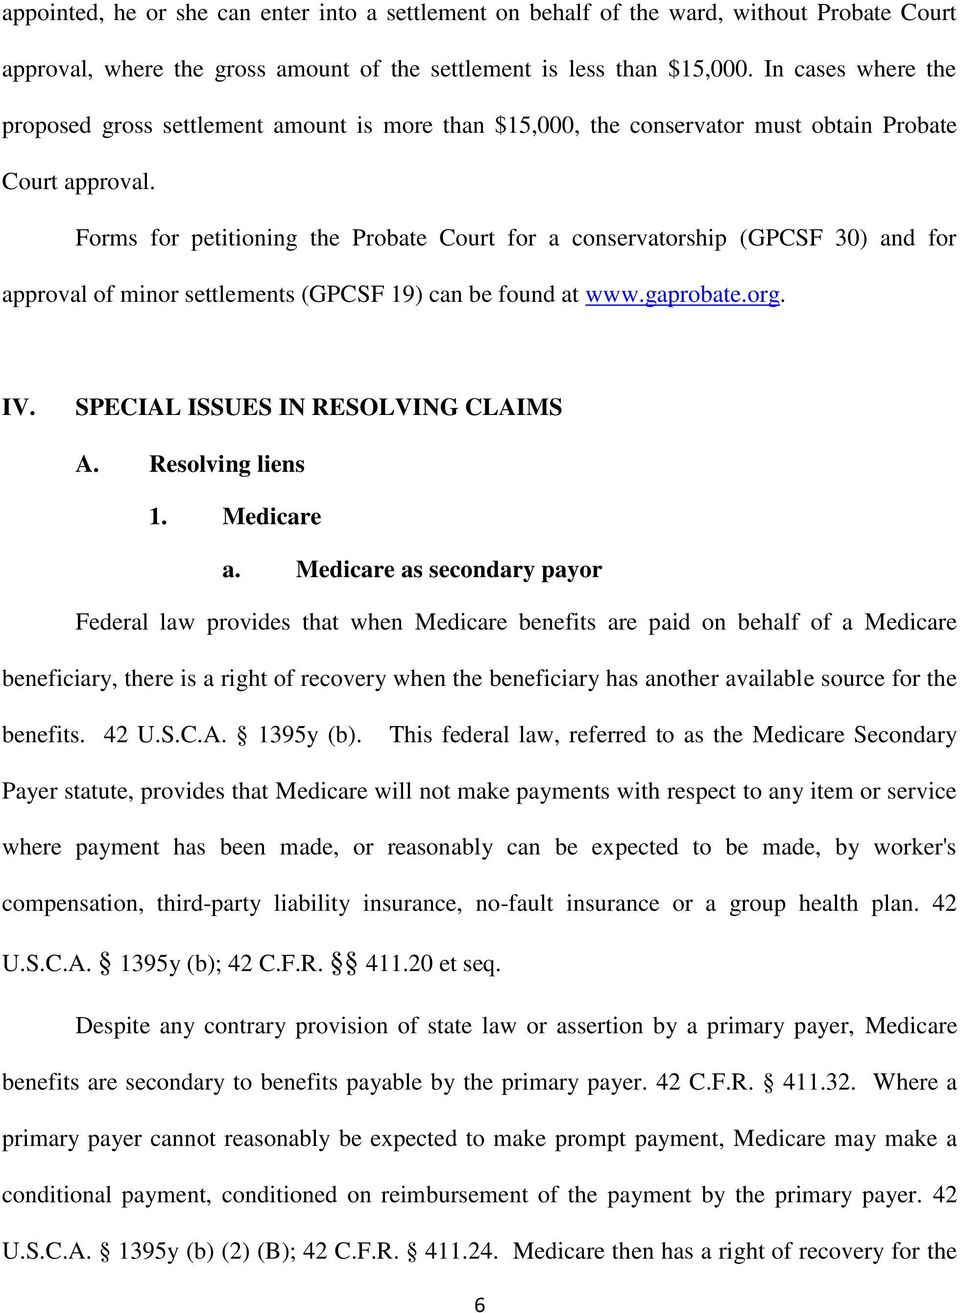 Forms for petitioning the Probate Court for a conservatorship (GPCSF 30) and for approval of minor settlements (GPCSF 19) can be found at www.gaprobate.org. IV. SPECIAL ISSUES IN RESOLVING CLAIMS A.